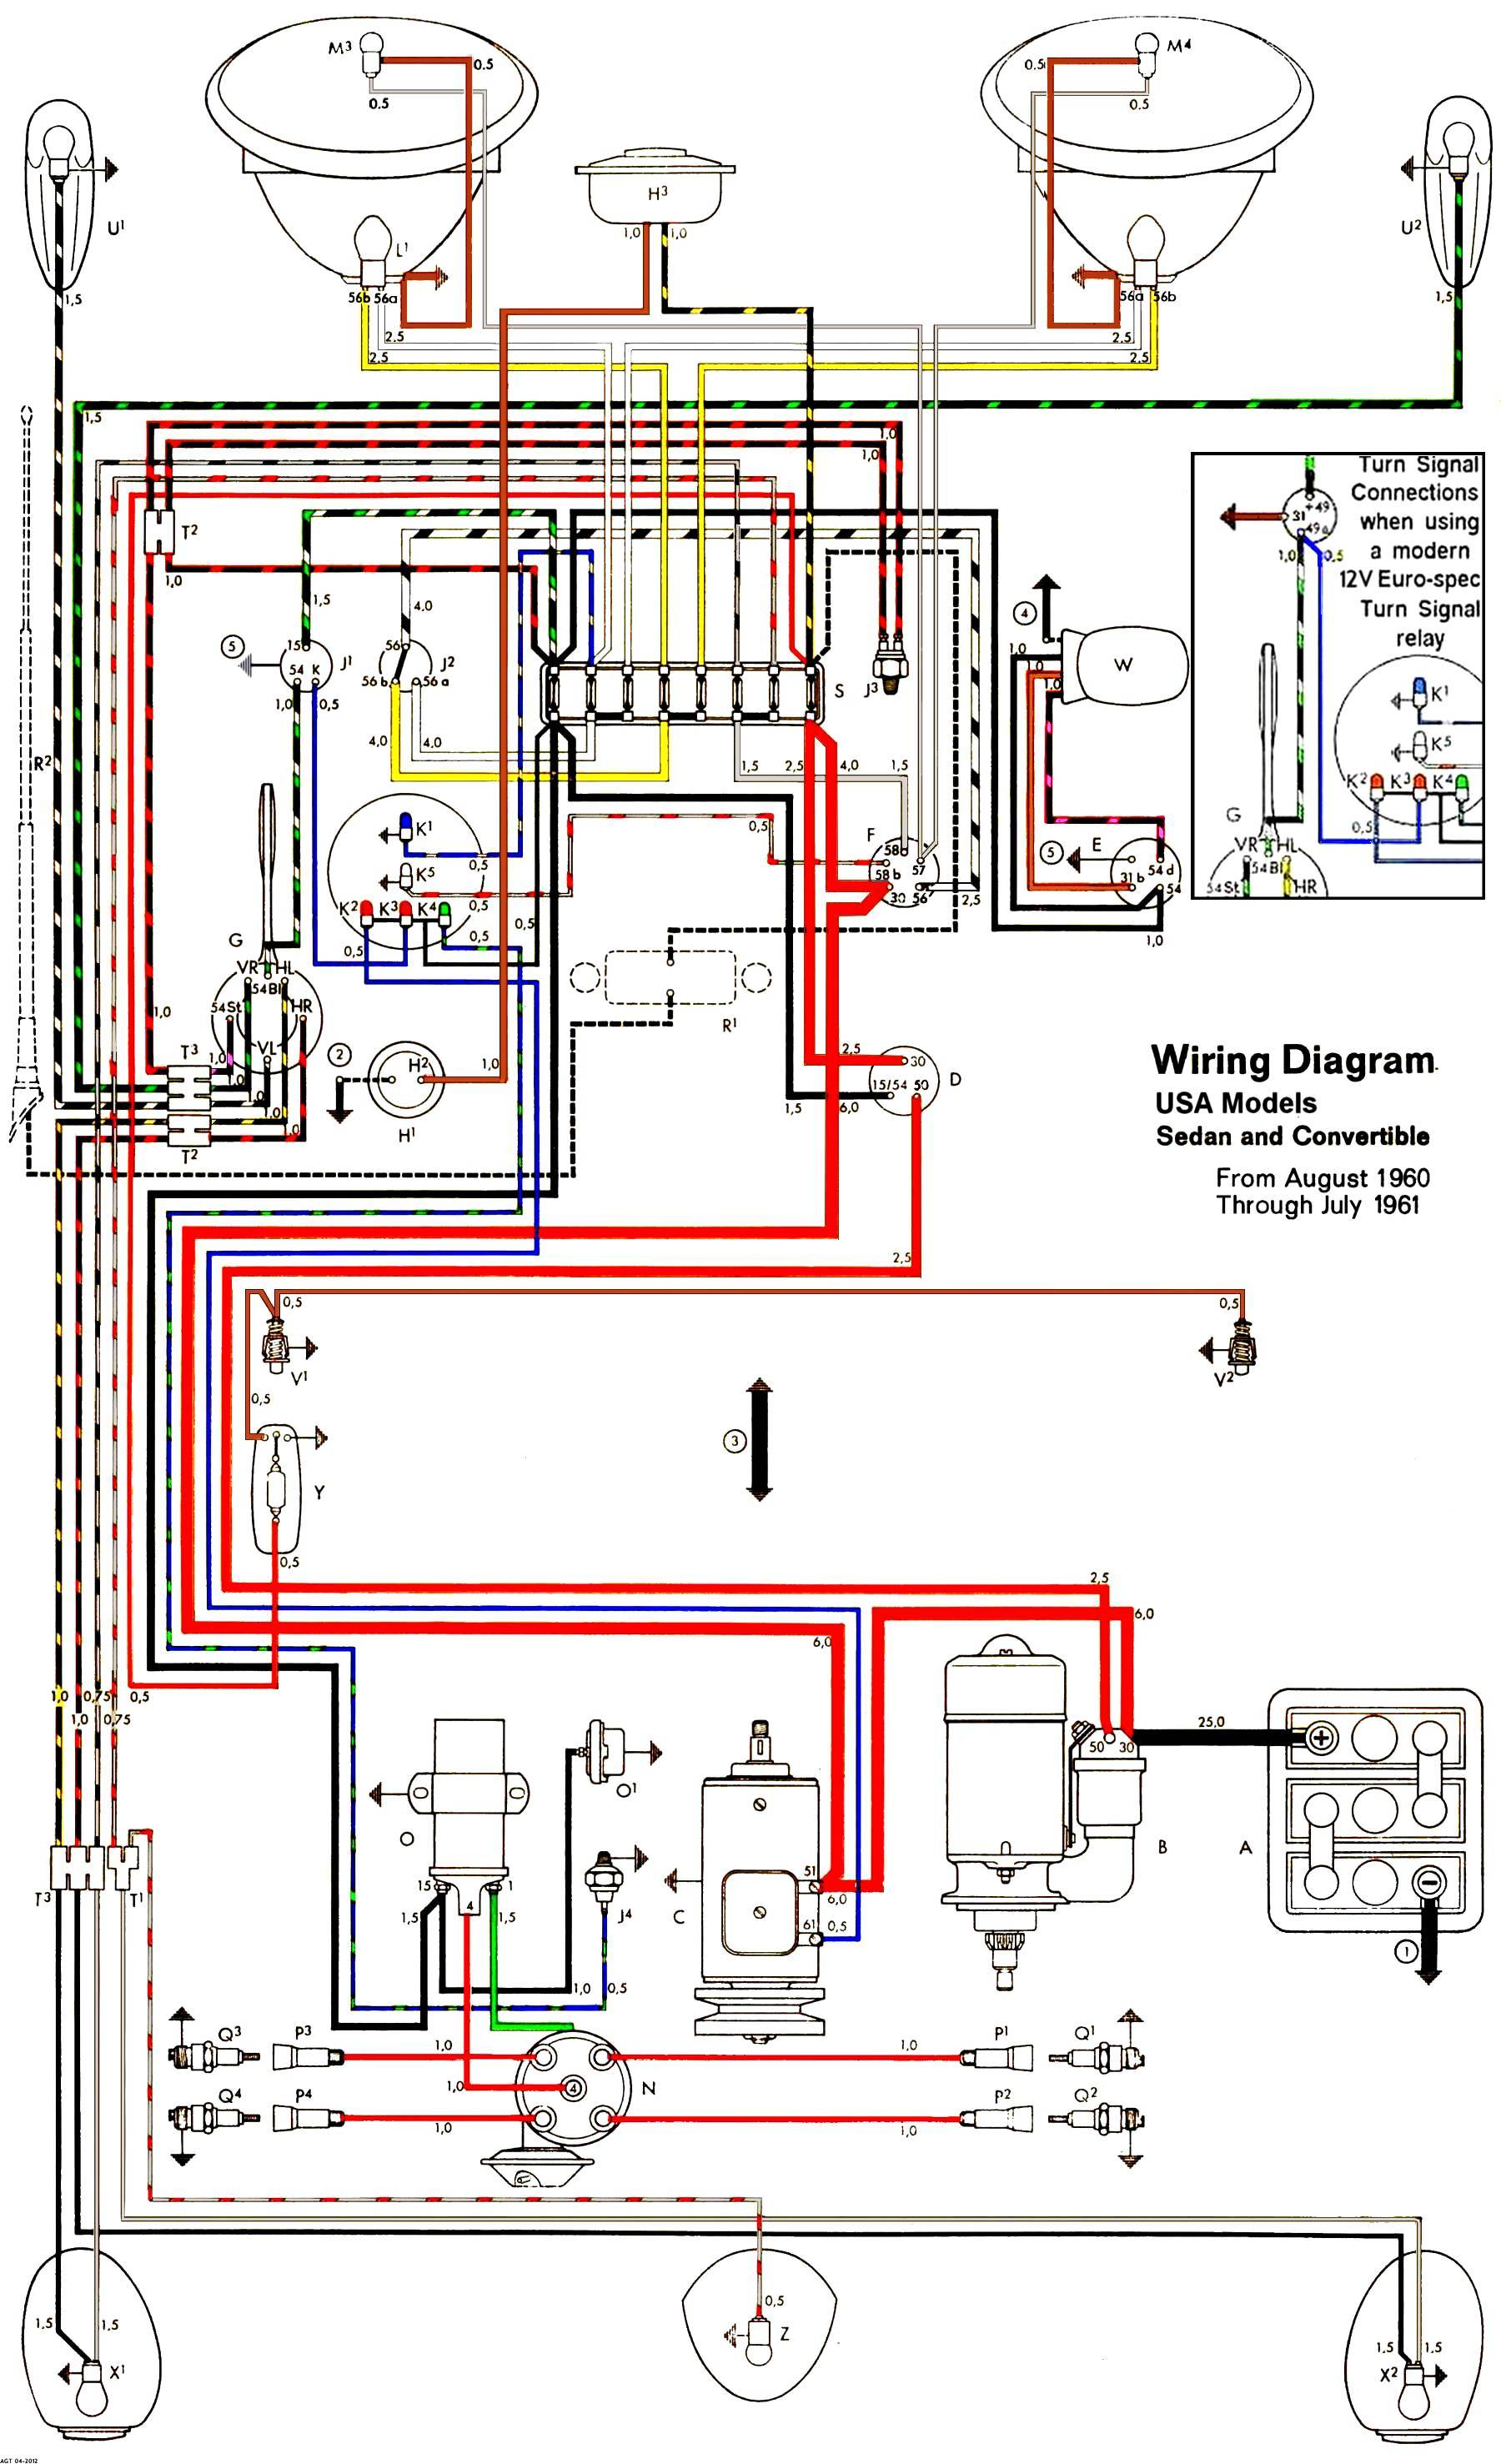 2004 Vw Jetta Tail Light Wiring Diagrams Free Diagram For You Portal Rh 19 14 5 Kaminari Music De 2003 000979225e